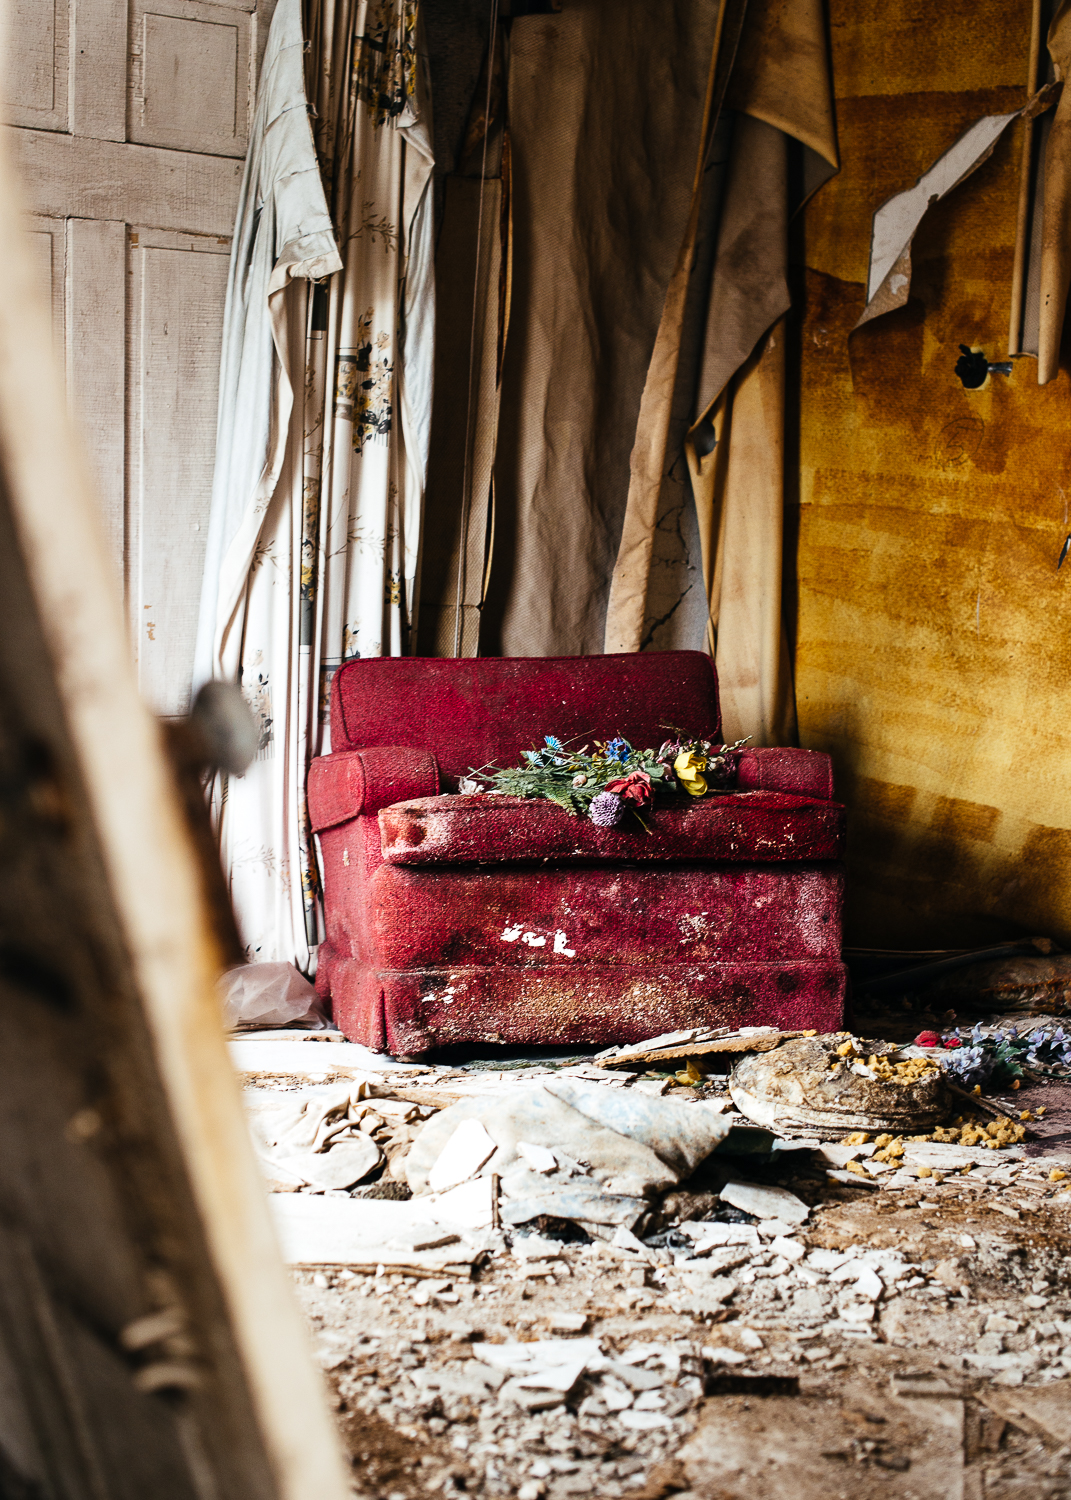 Lead paint, peeling wallpaper, and old furniture hold the history to Hyde Manor.